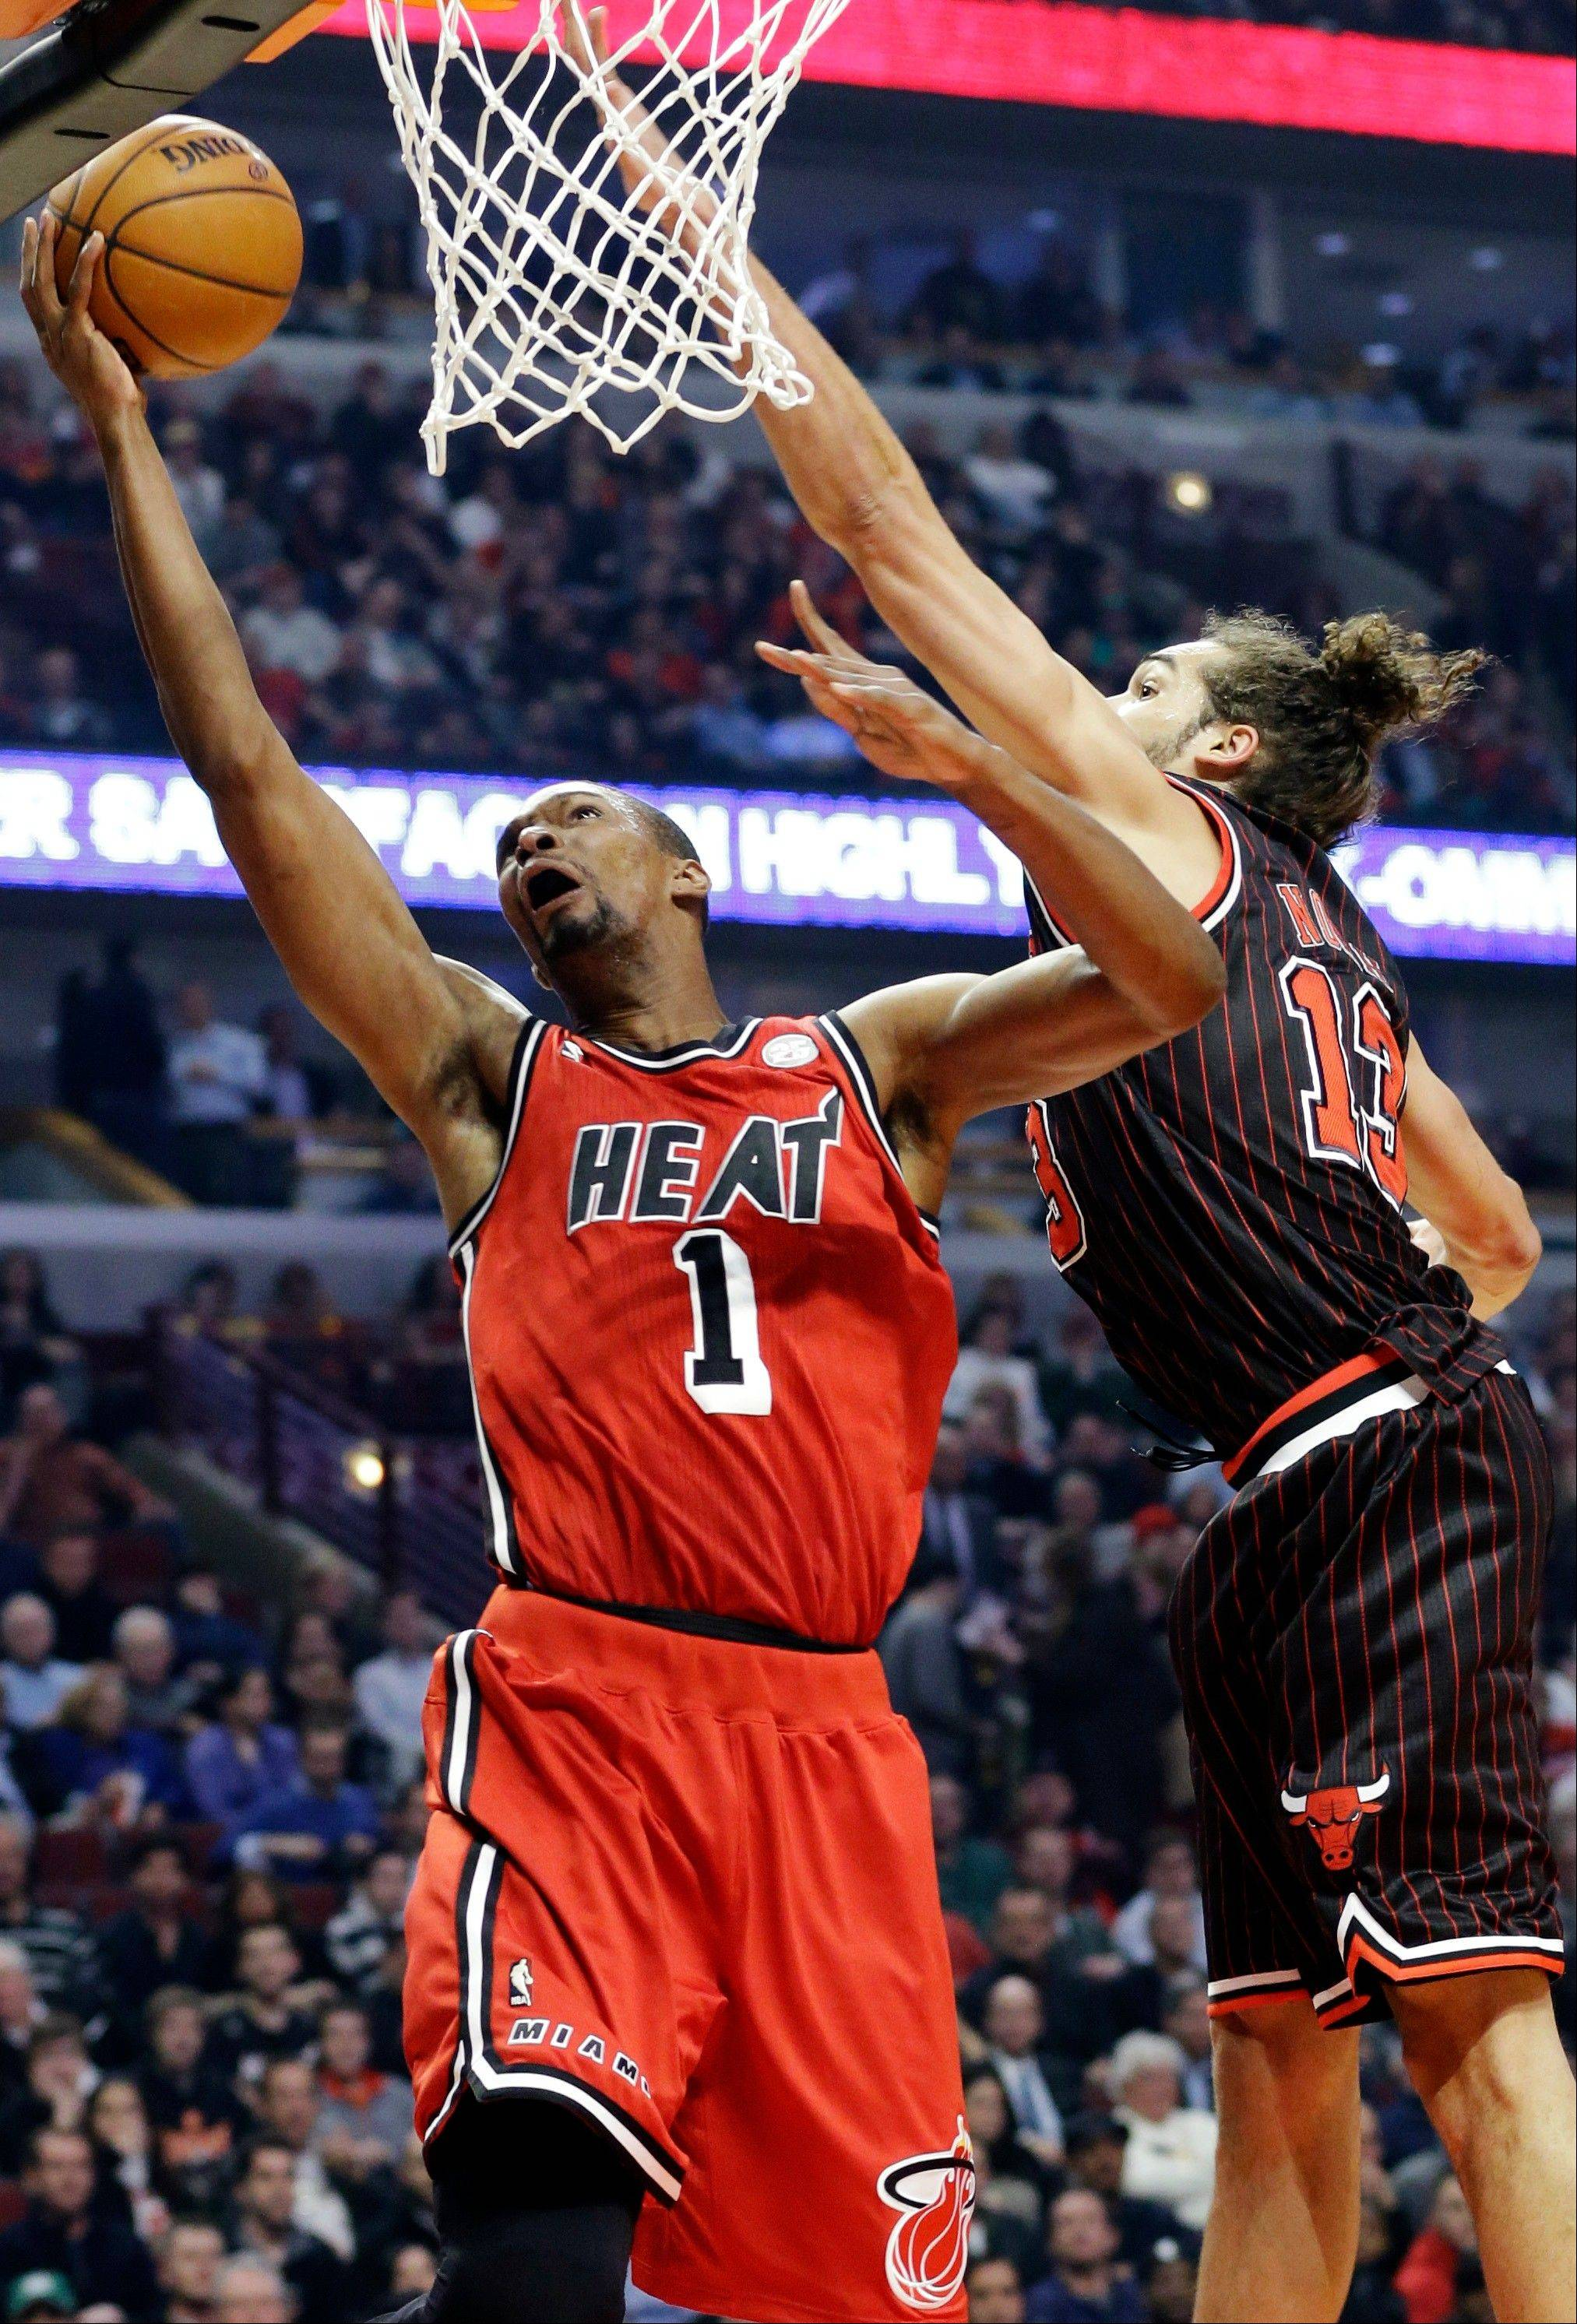 Heat center Chris Bosh (1) drives to the basket against Chicago Bulls center Joakim Noah during the first half of an NBA basketball game in Chicago, Thursday, Feb. 21, 2013.